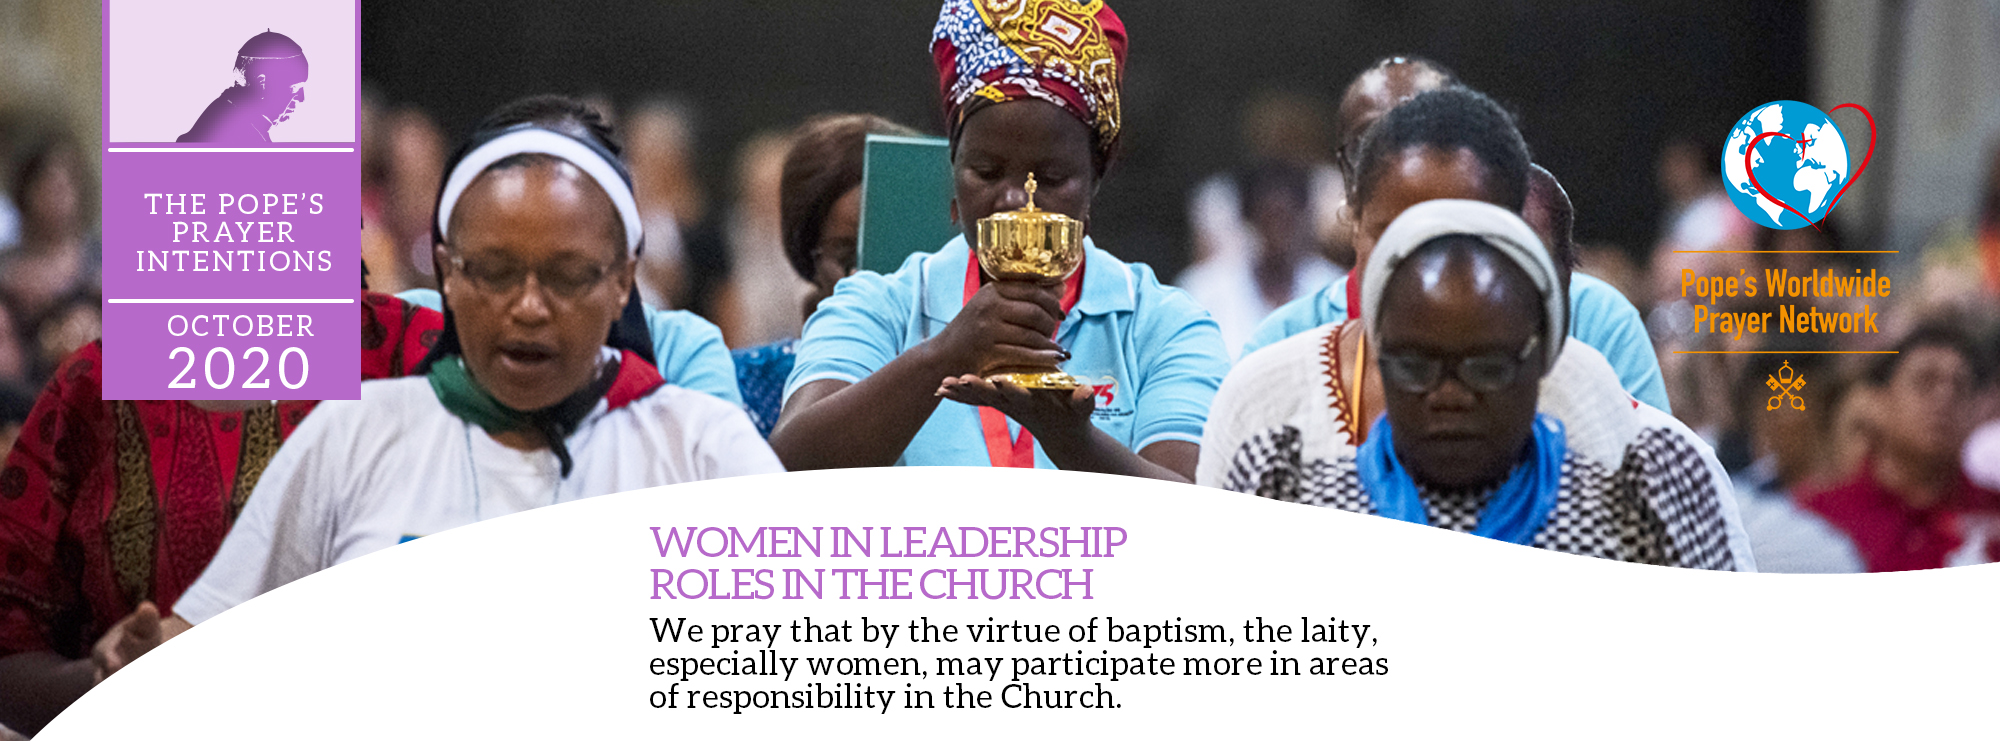 the pope's prayer intentions october 2020 women